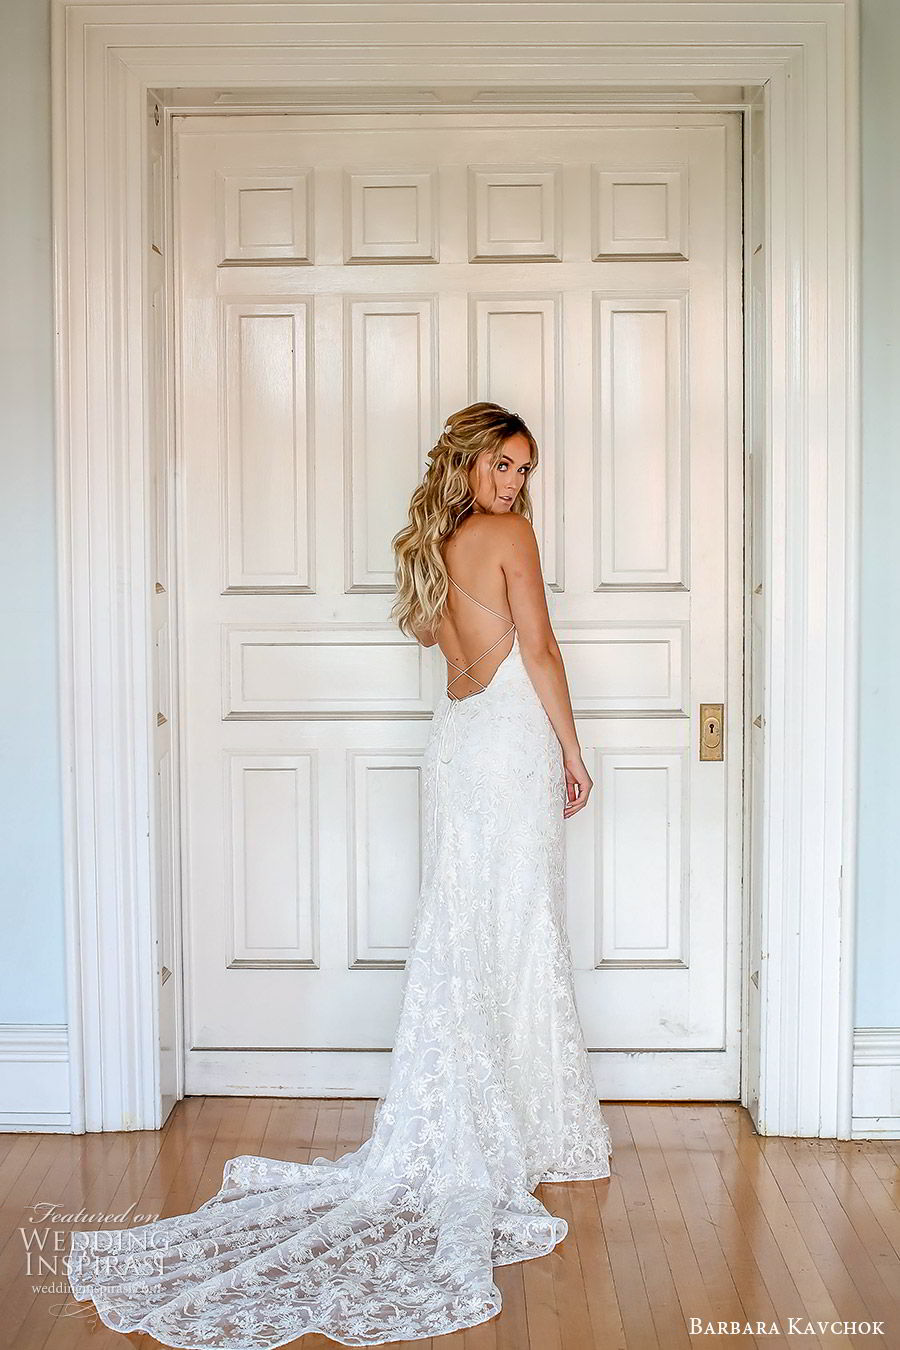 barbara kavchok fall 2019 bridal sleeveless thin straps sweetheart neckline lace sheath wedding dress (9) bv low back boho elegant romantic